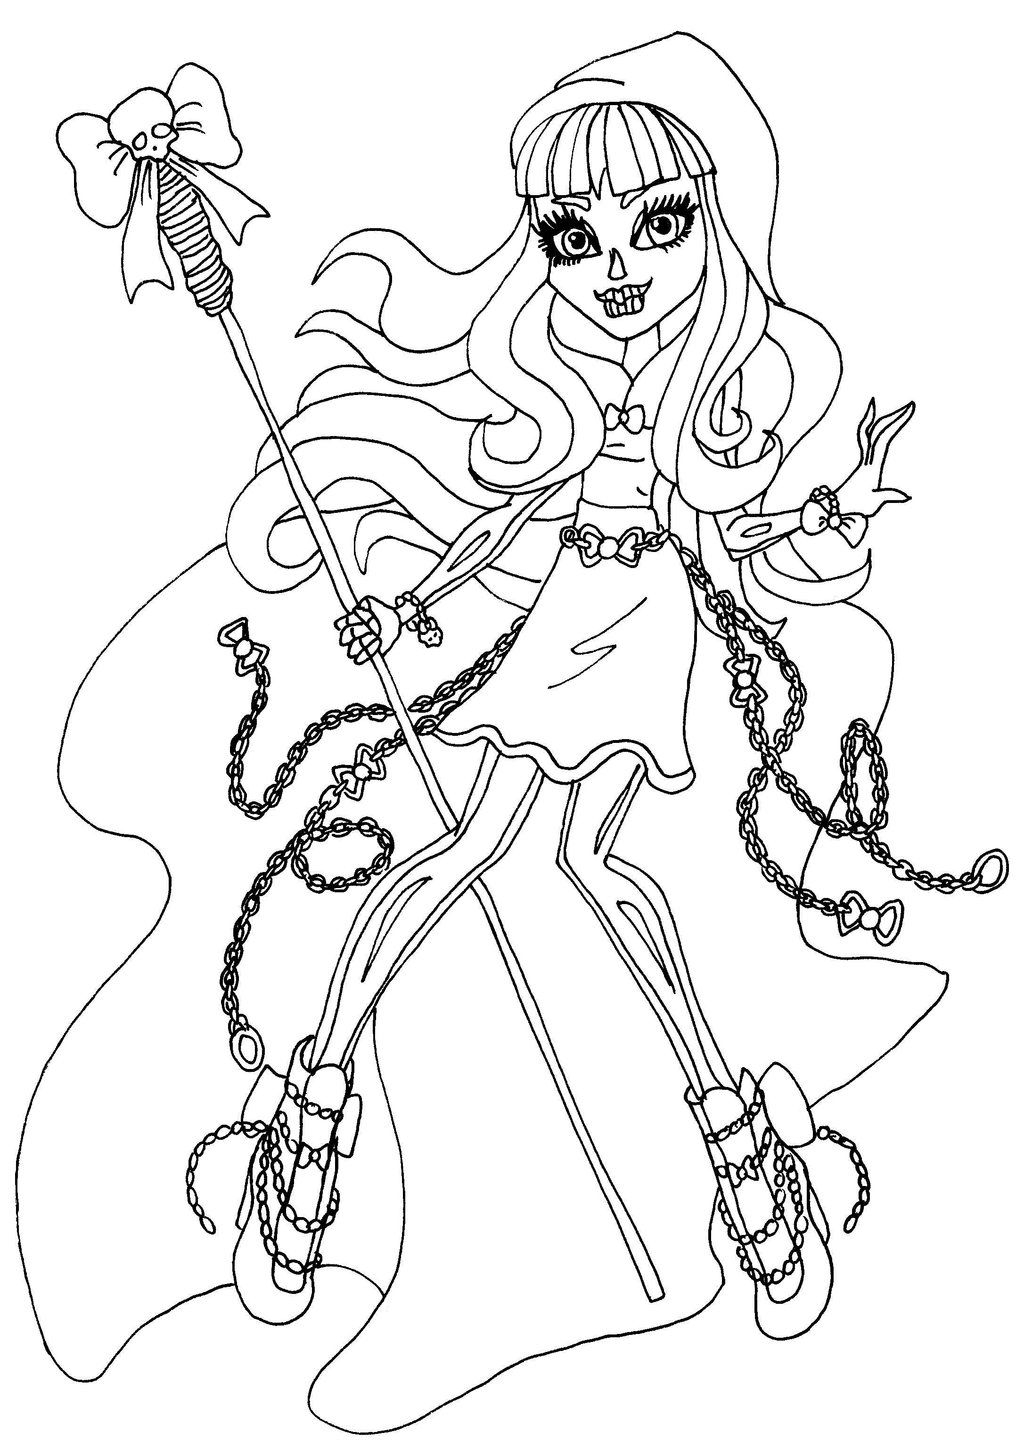 Best Monster High Coloring Pages Printable Print Color Craft Pic to Print Of Monster High Coloring Pages Monster High Coloring Page All Collection